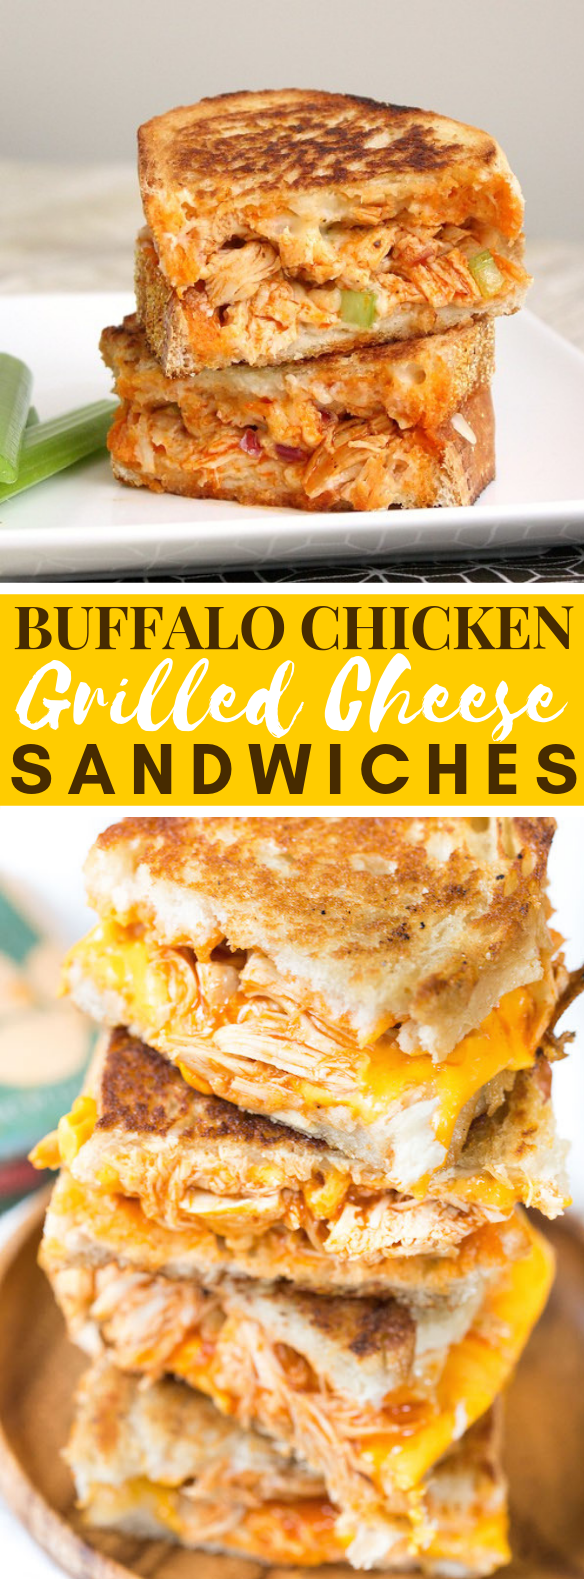 BUFFALO CHICKEN GRILLED CHEESE SANDWICHES #dinner #lunch